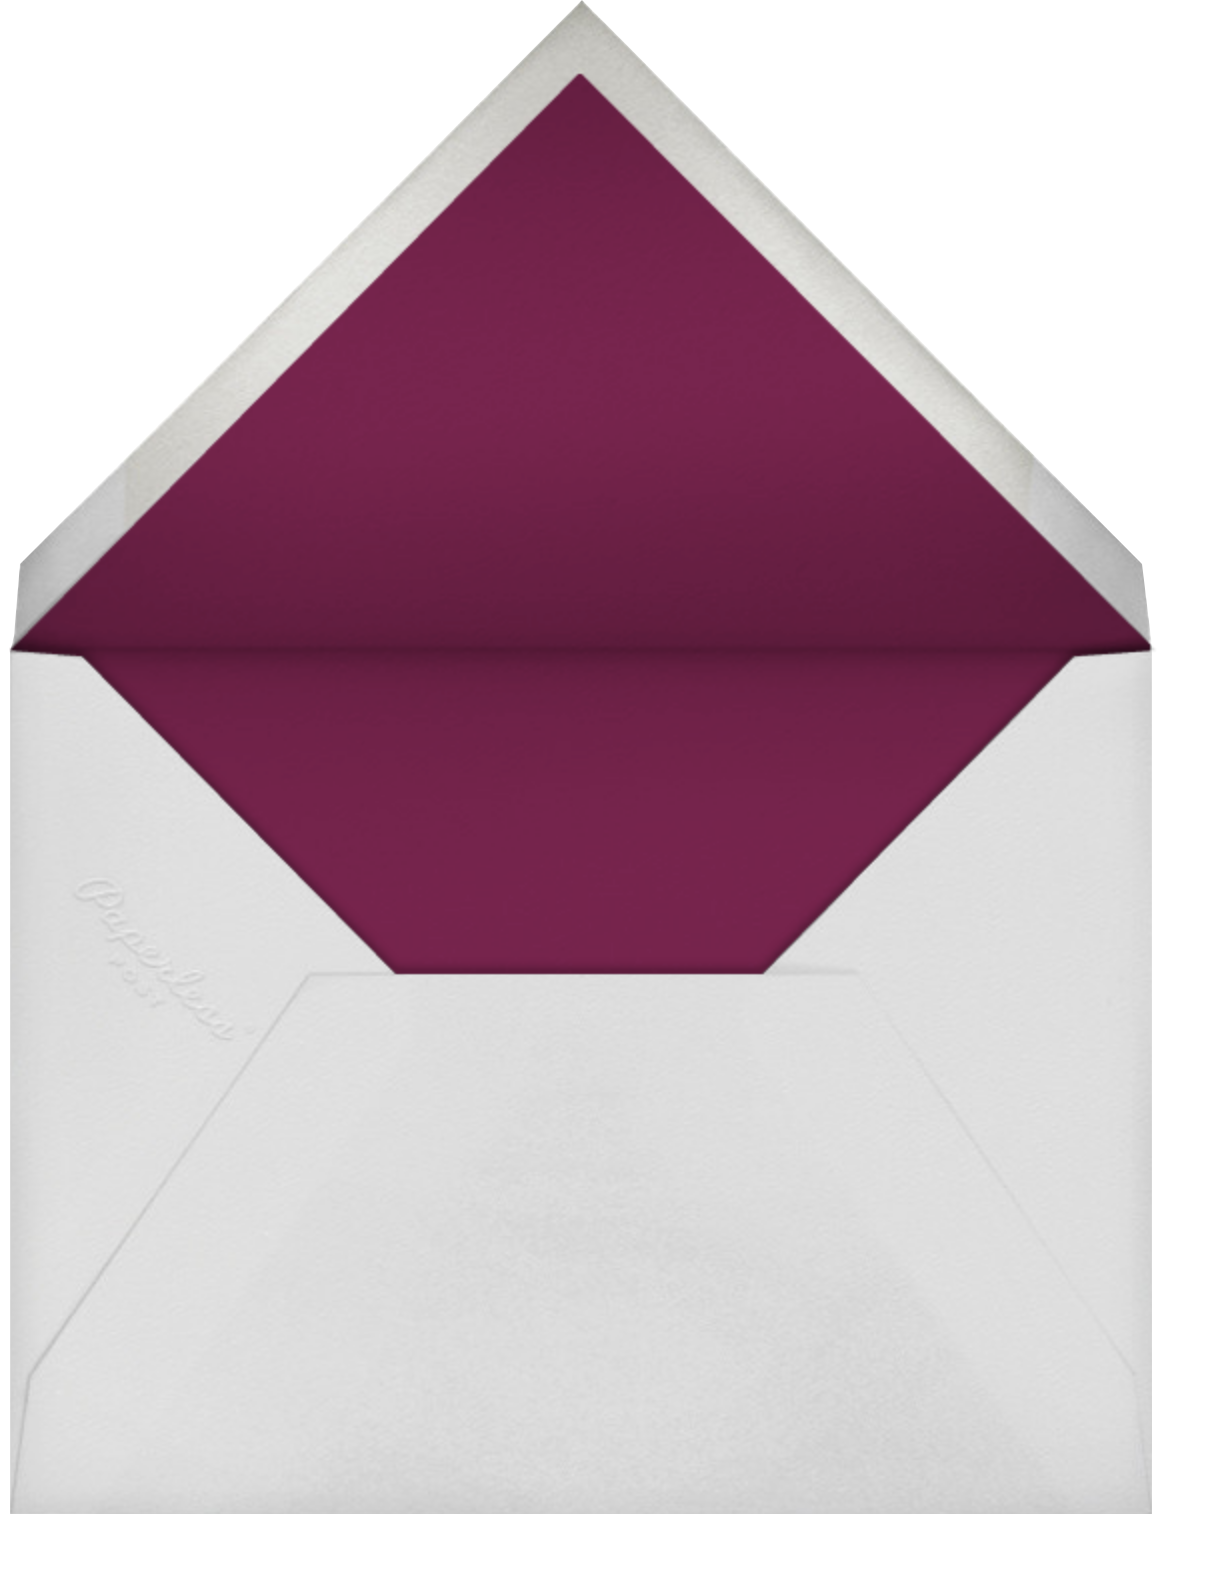 Vineyard I (Save the Date) - Burgundy - Paperless Post - Save the date - envelope back